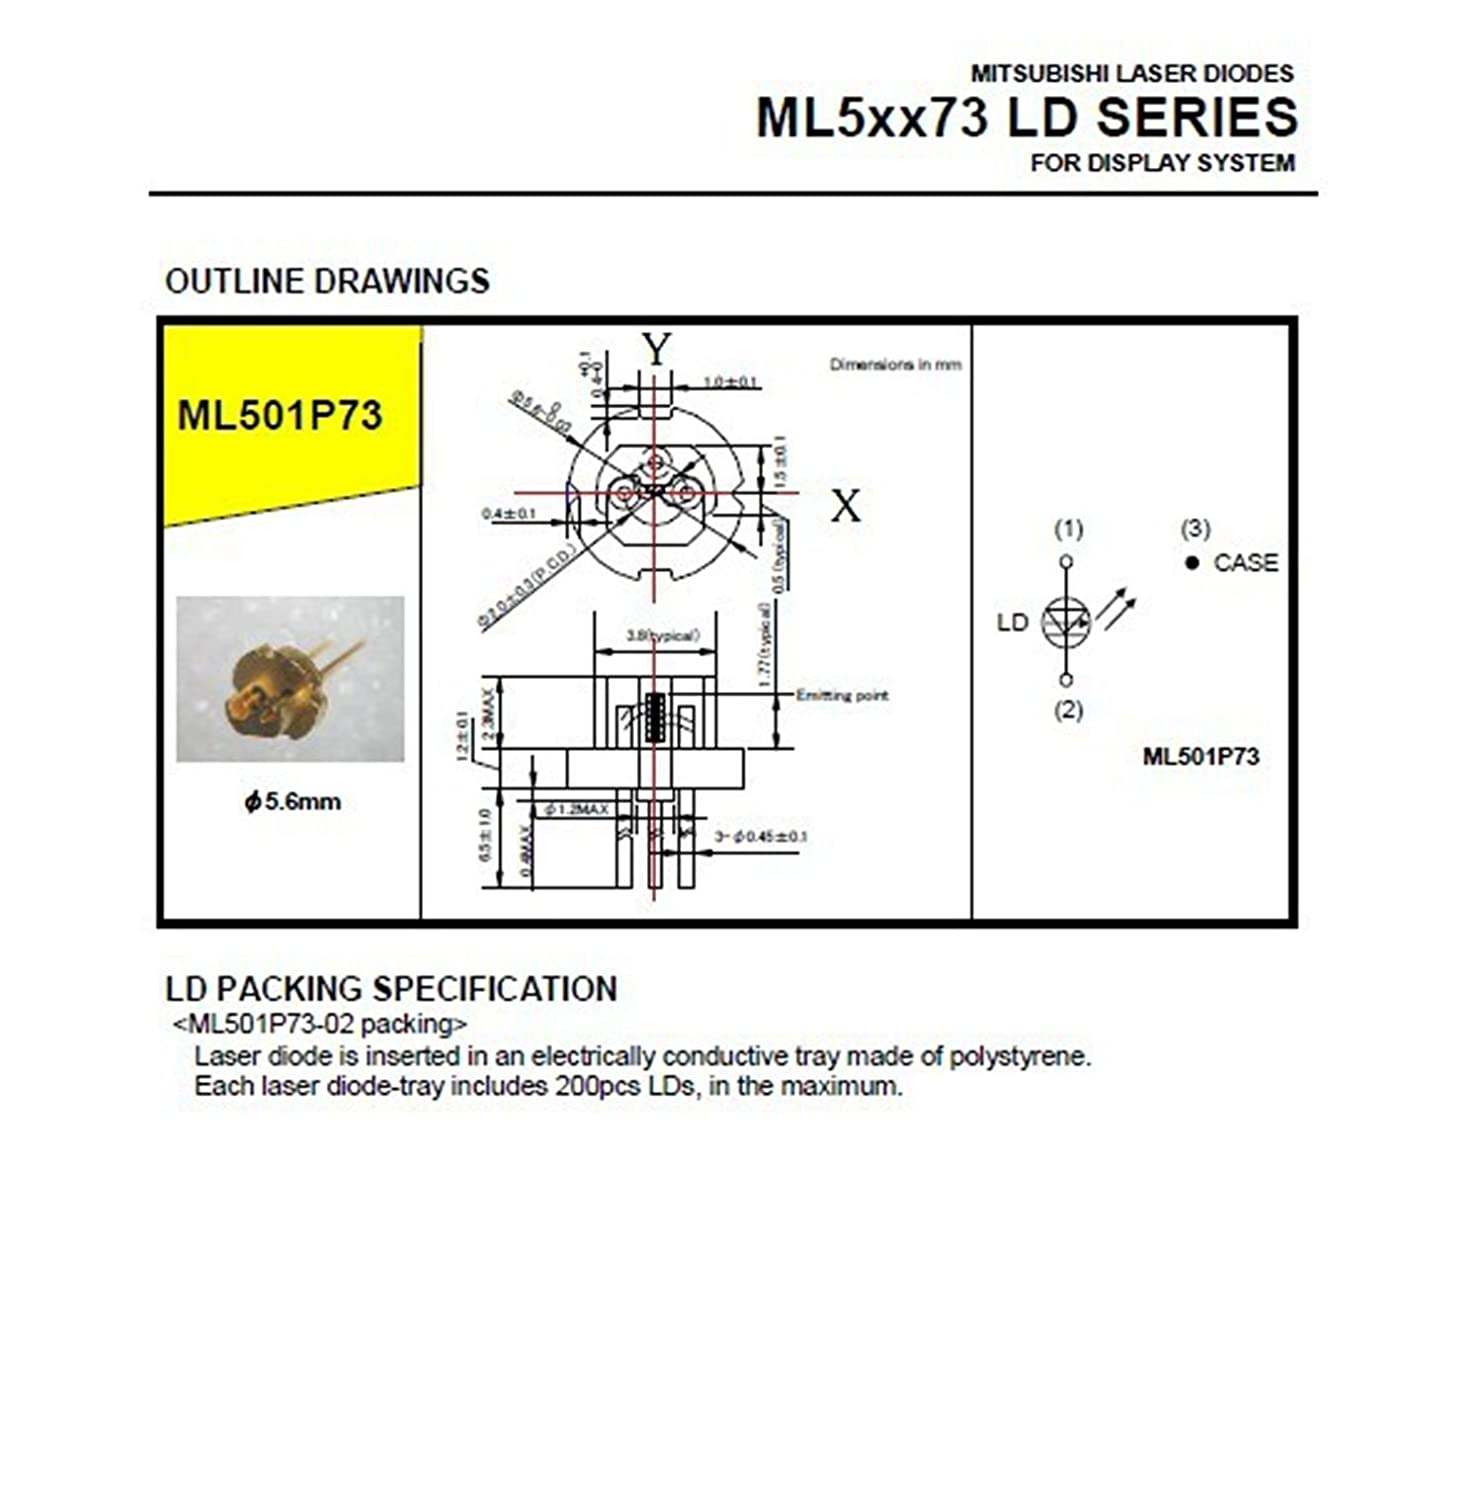 New Original Ml501p73 Pulse1000mw 638nm Red Laser Diode Diagram Highspeed Driver Industrial Scientific